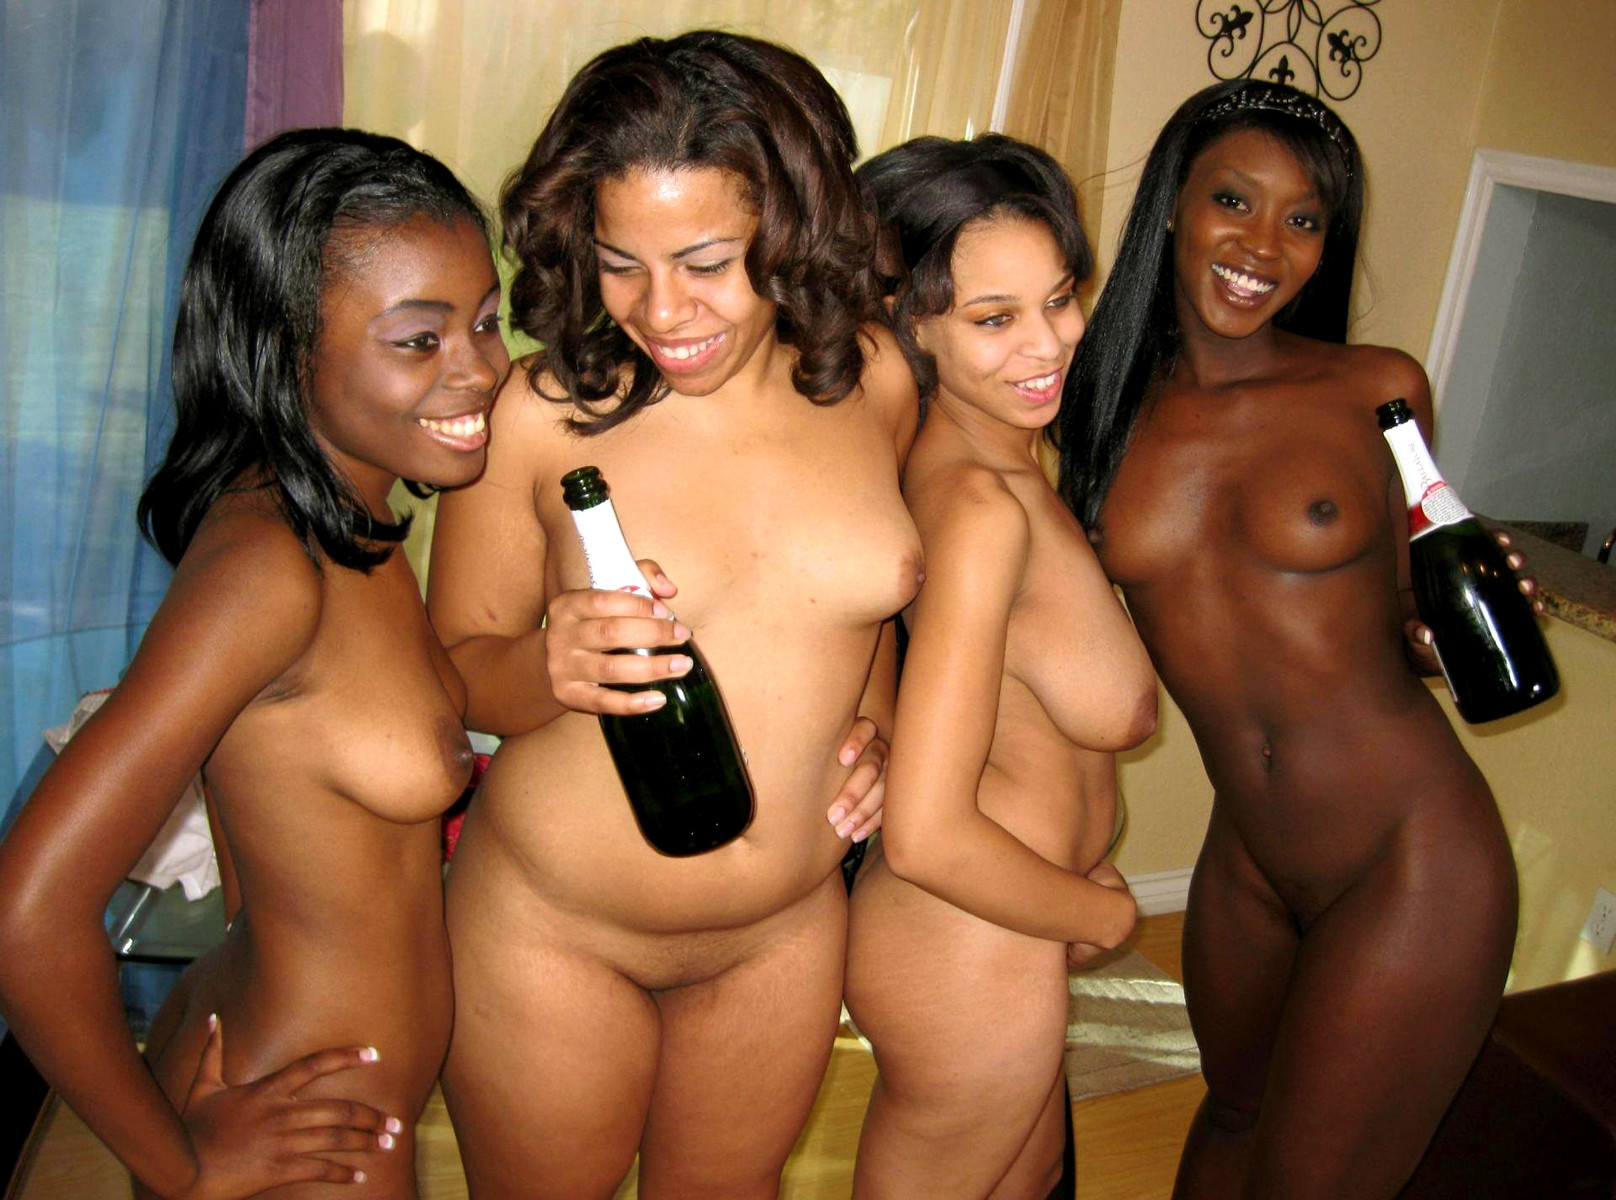 That group of hot ebony girls nude shaved tight flavor